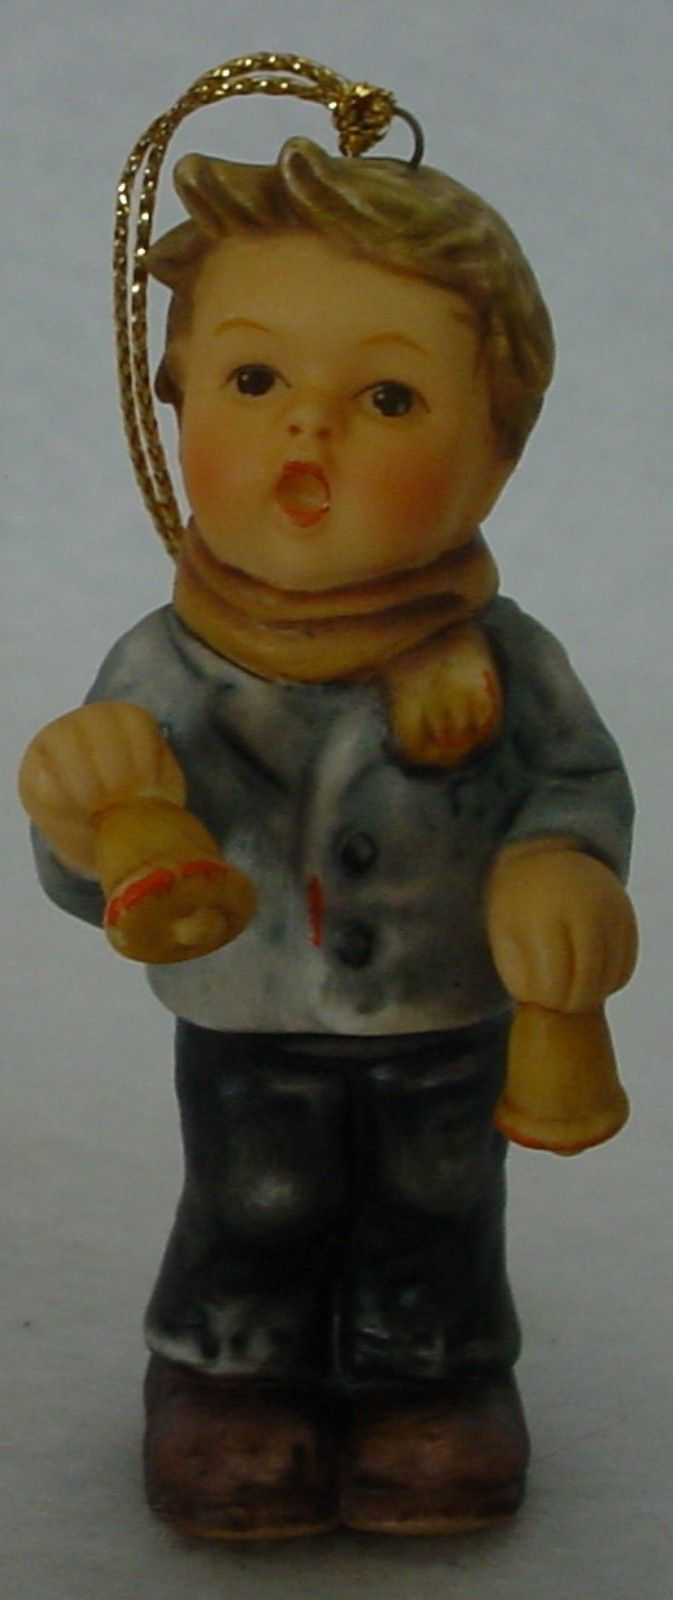 GOEBEL porcelain LITTLE BELL RINGER BH0016 ORNAMENT 1999 no box